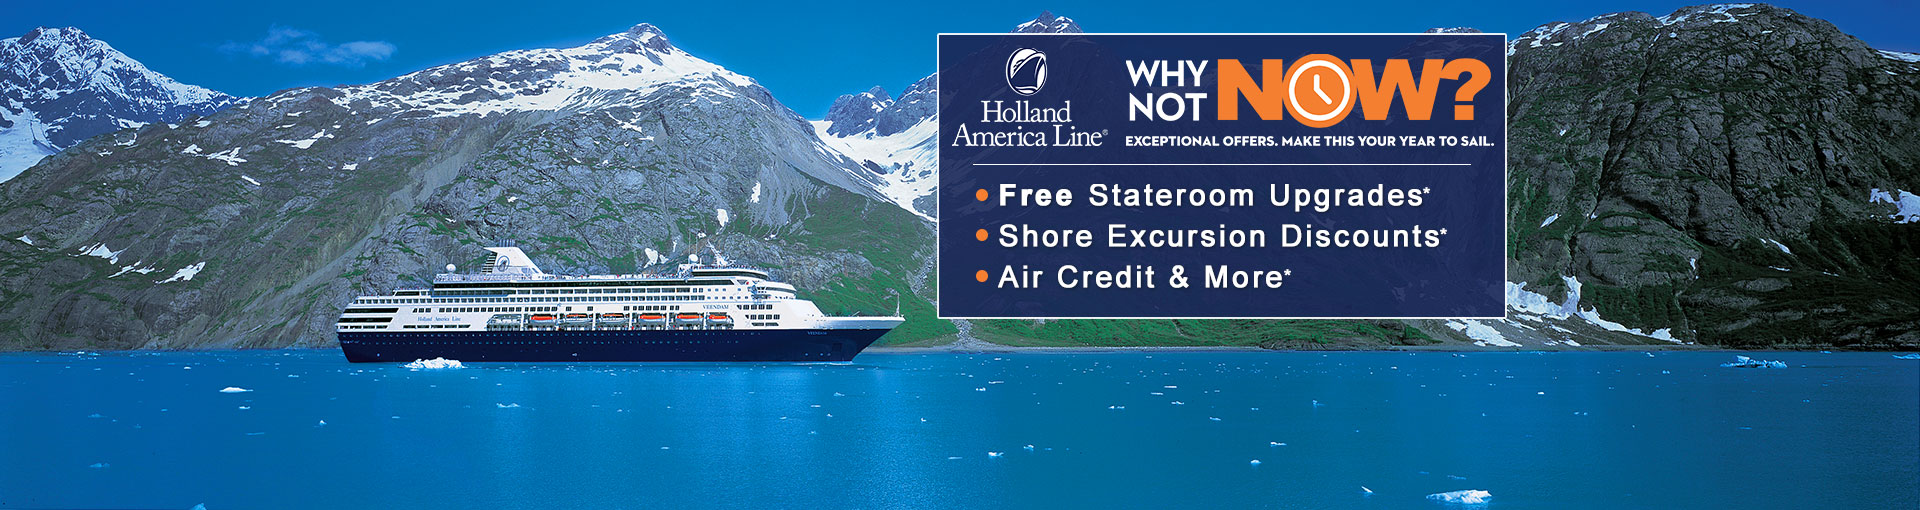 Holland America Why Not Now: Alaska